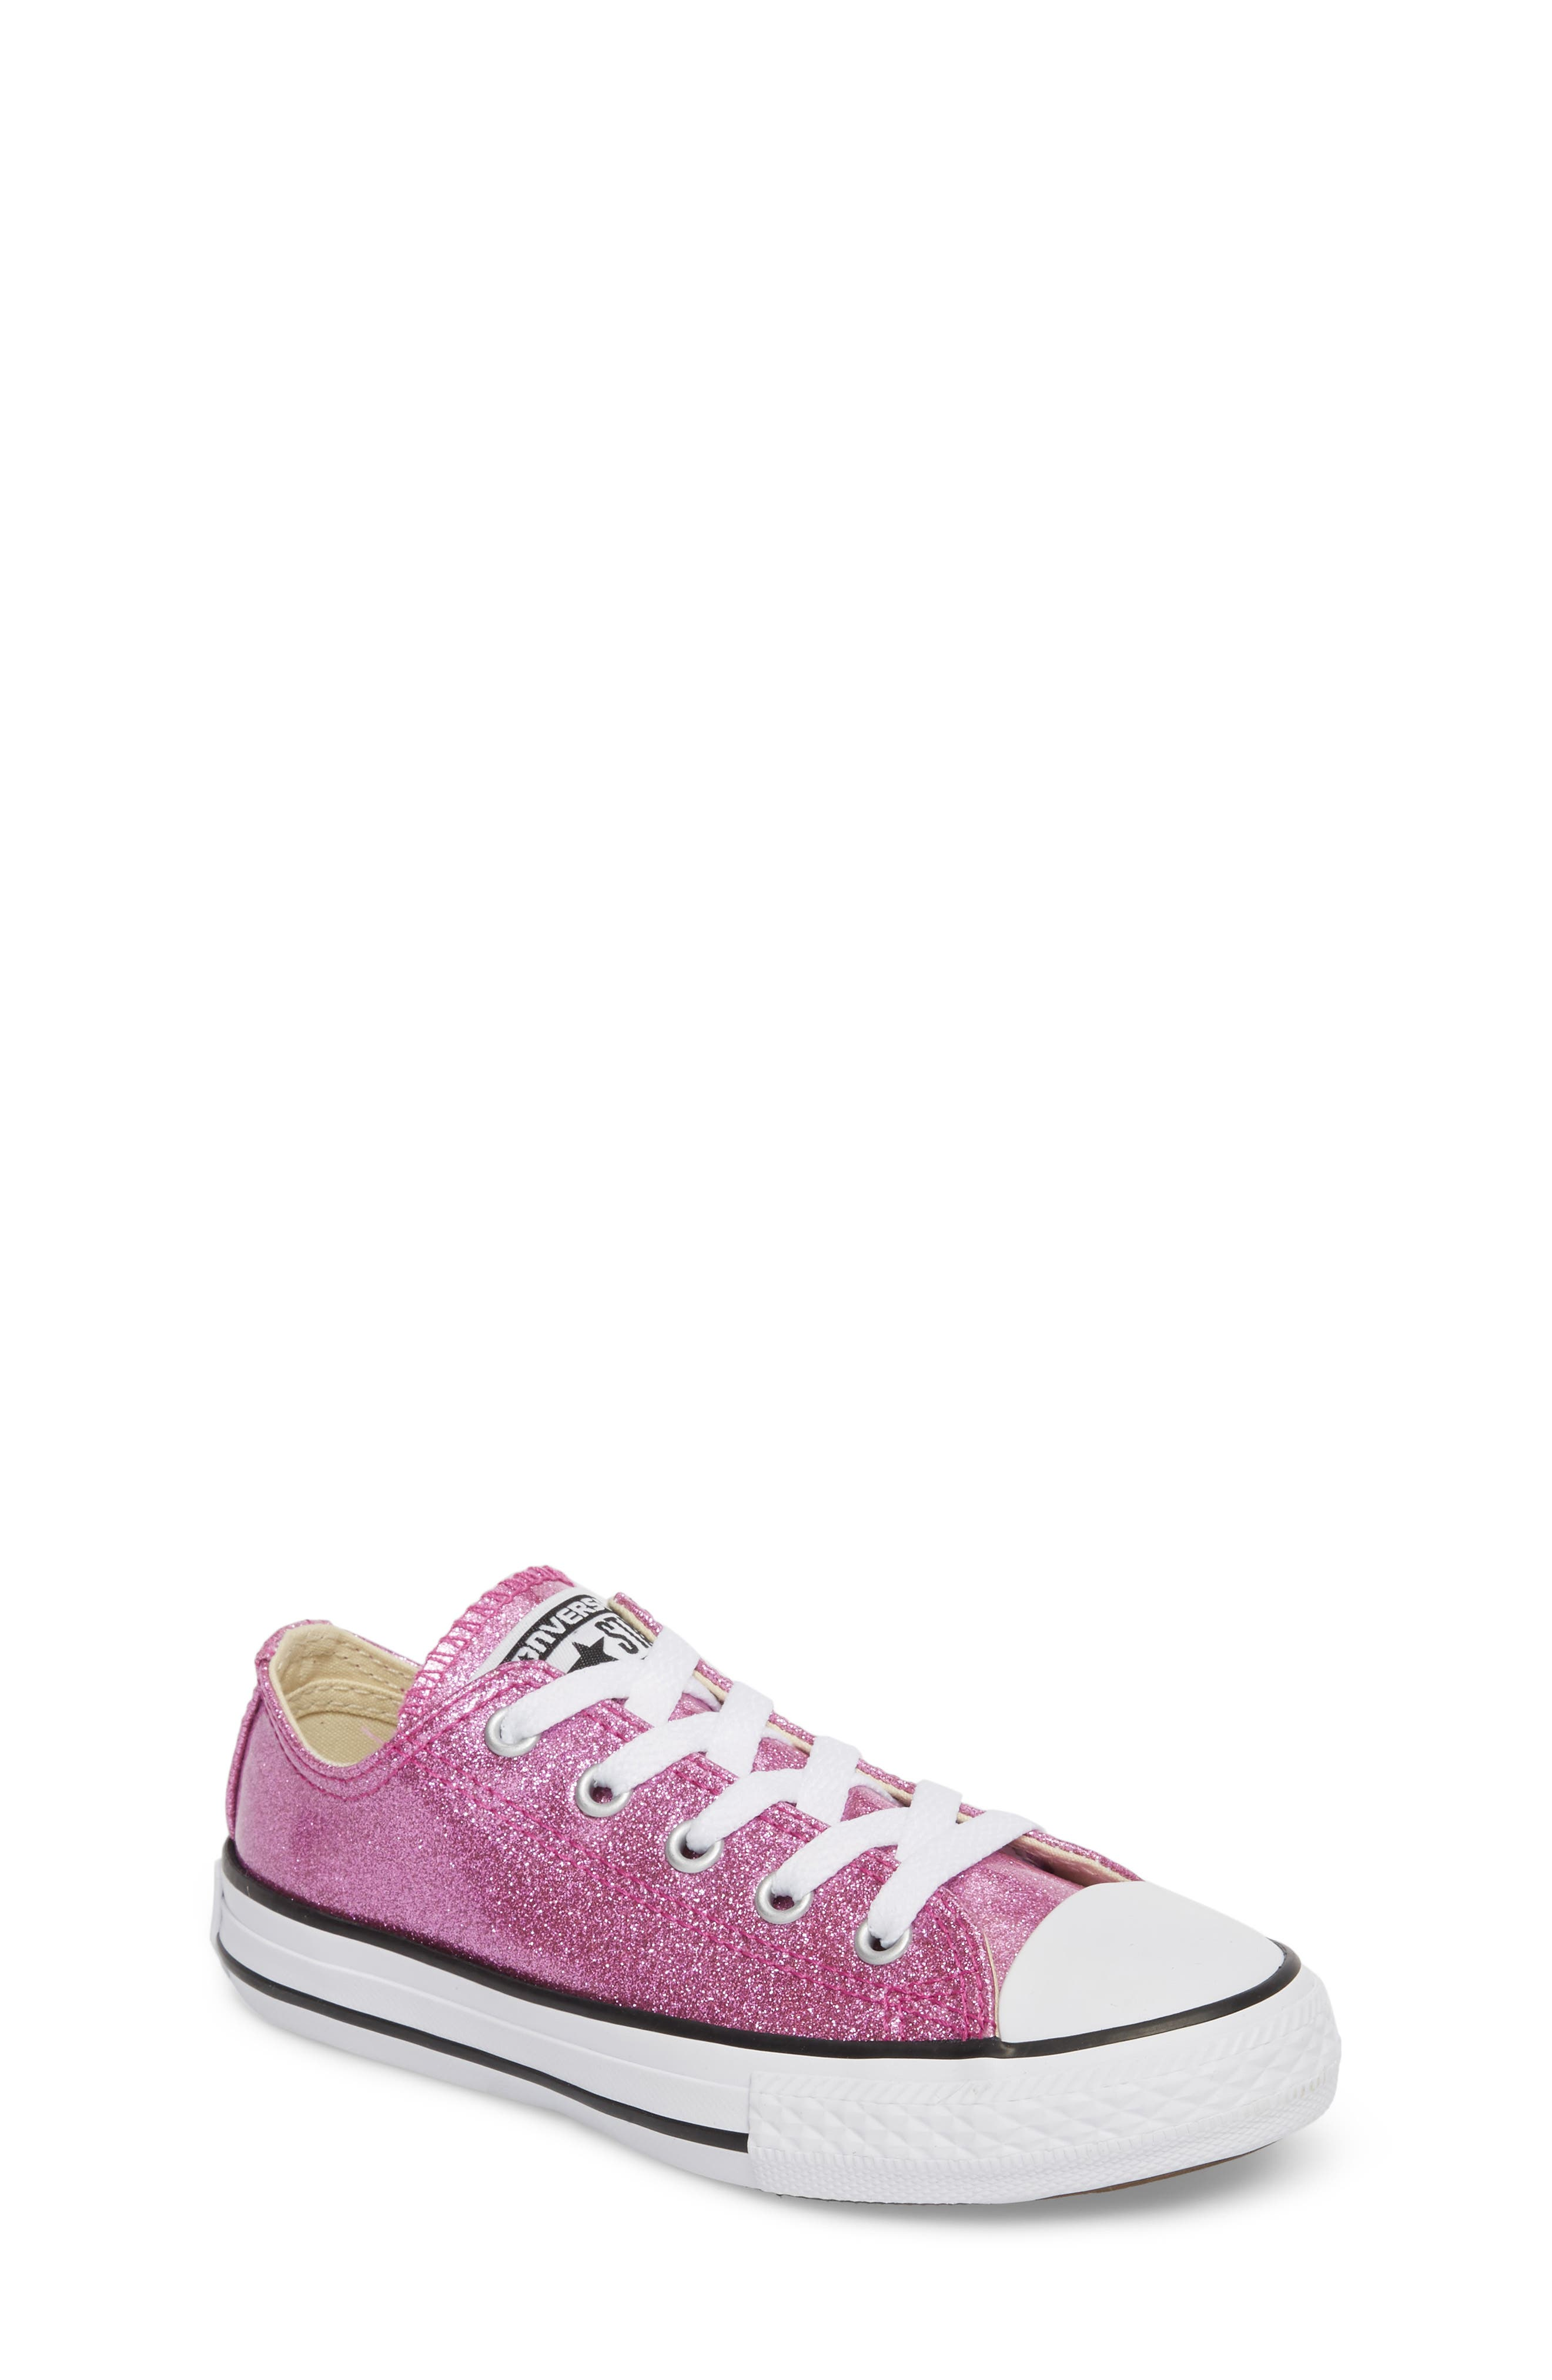 All Star<sup>®</sup> Seasonal Glitter OX Low Top Sneaker,                         Main,                         color, Bright Violet